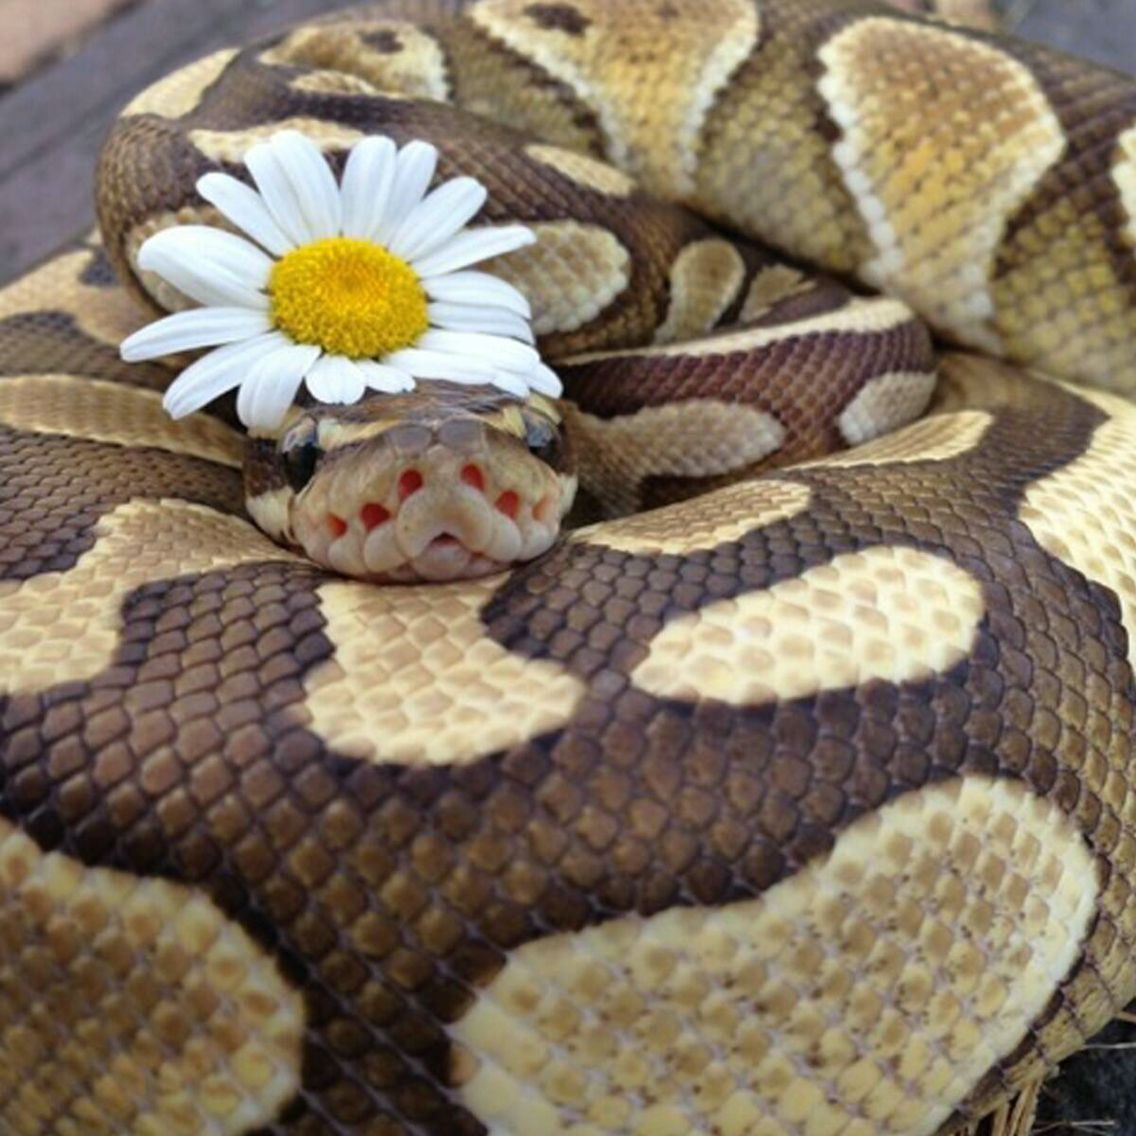 Ball Python Love Cute Reptiles Pet Snake Snakes With Hats